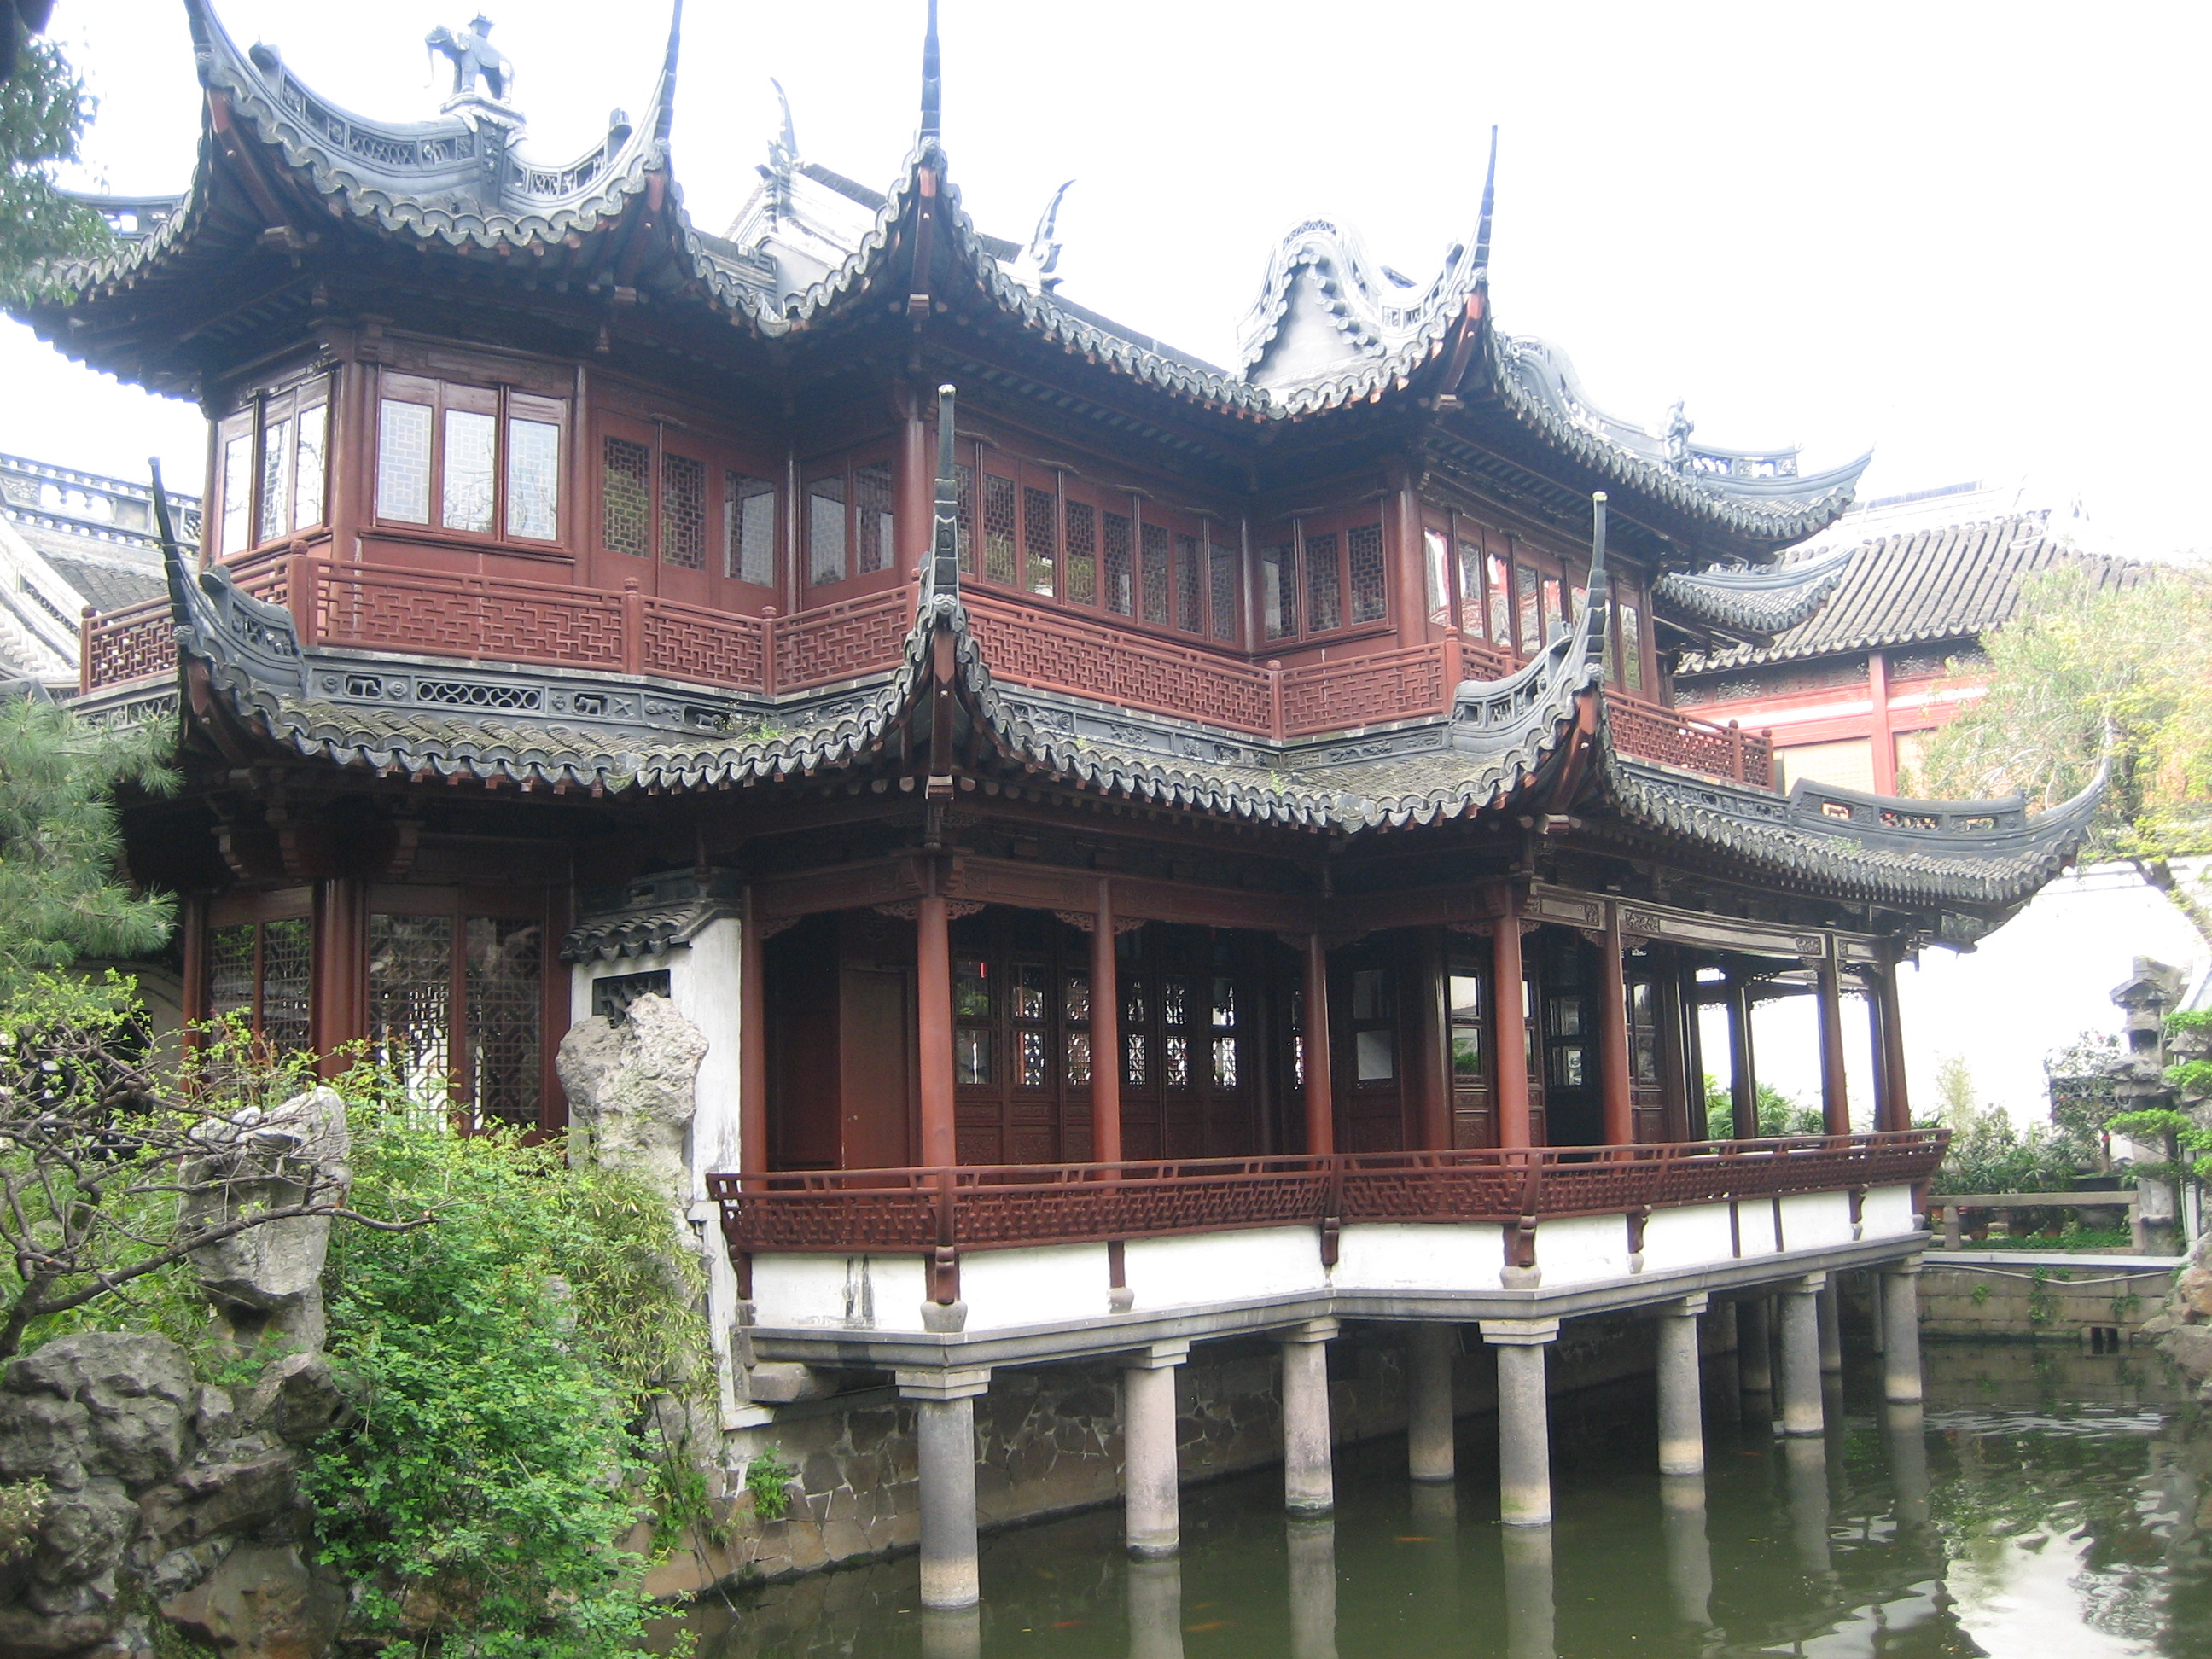 Giardino Yuyuan Yuyuan Garden Ancient Chinese Architecture In Old City Shanghai